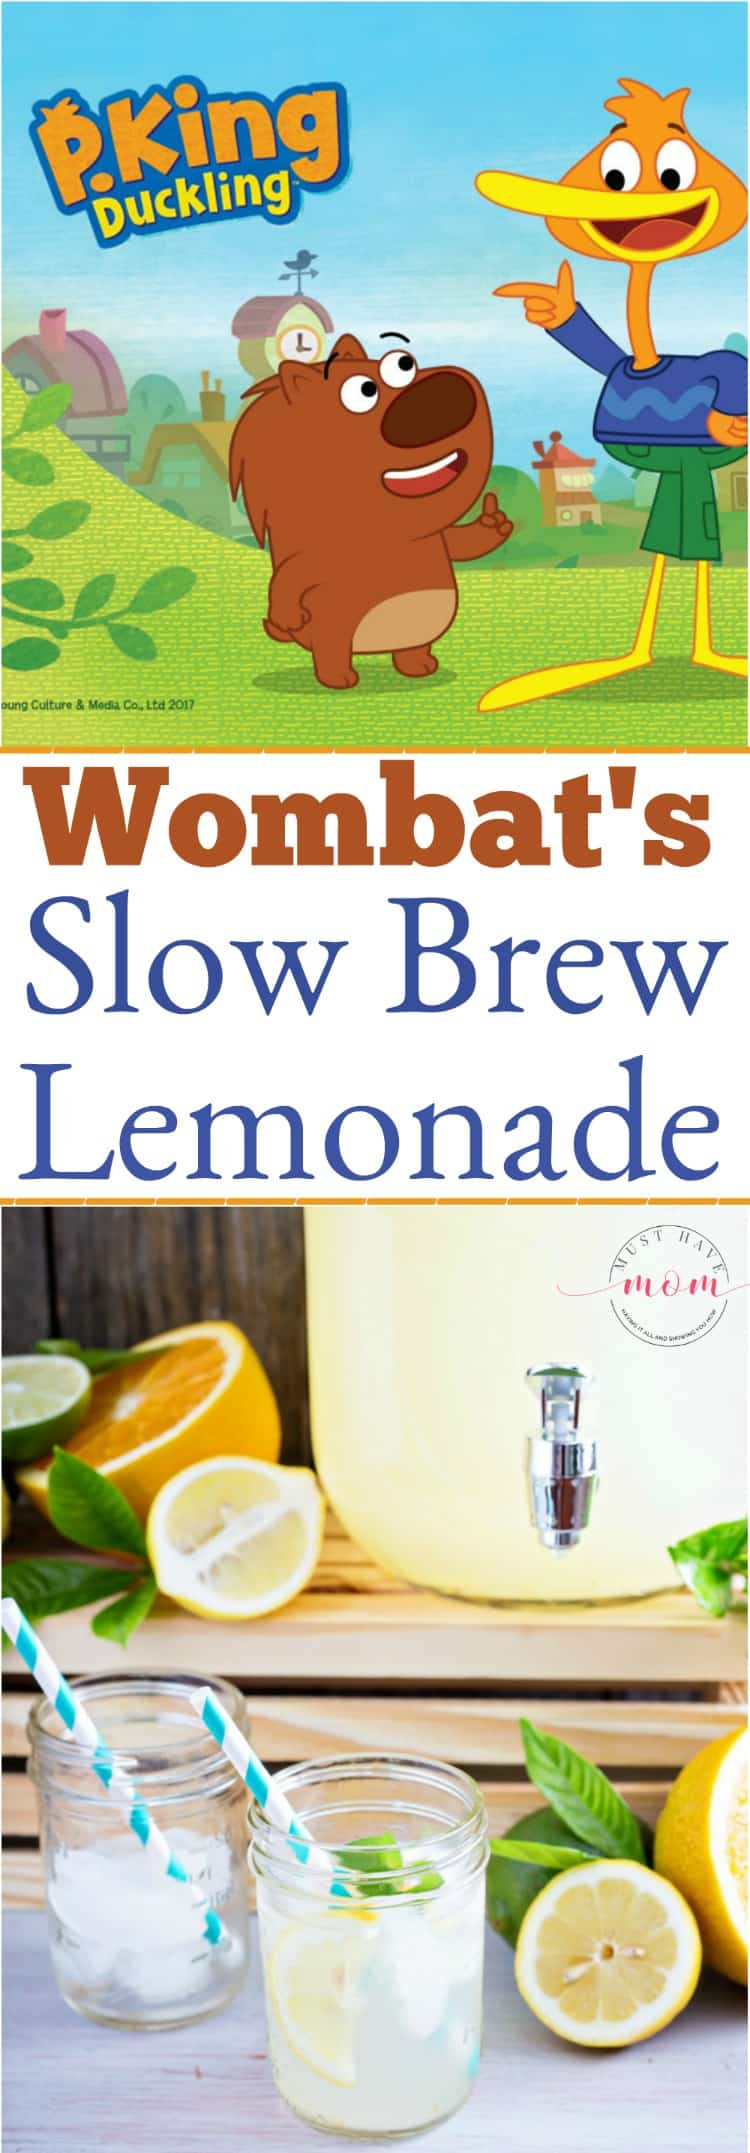 P. King Duckling ideas! Wombat's slow brew lemonade recipe. Great for P. King Duckling birthday party theme!